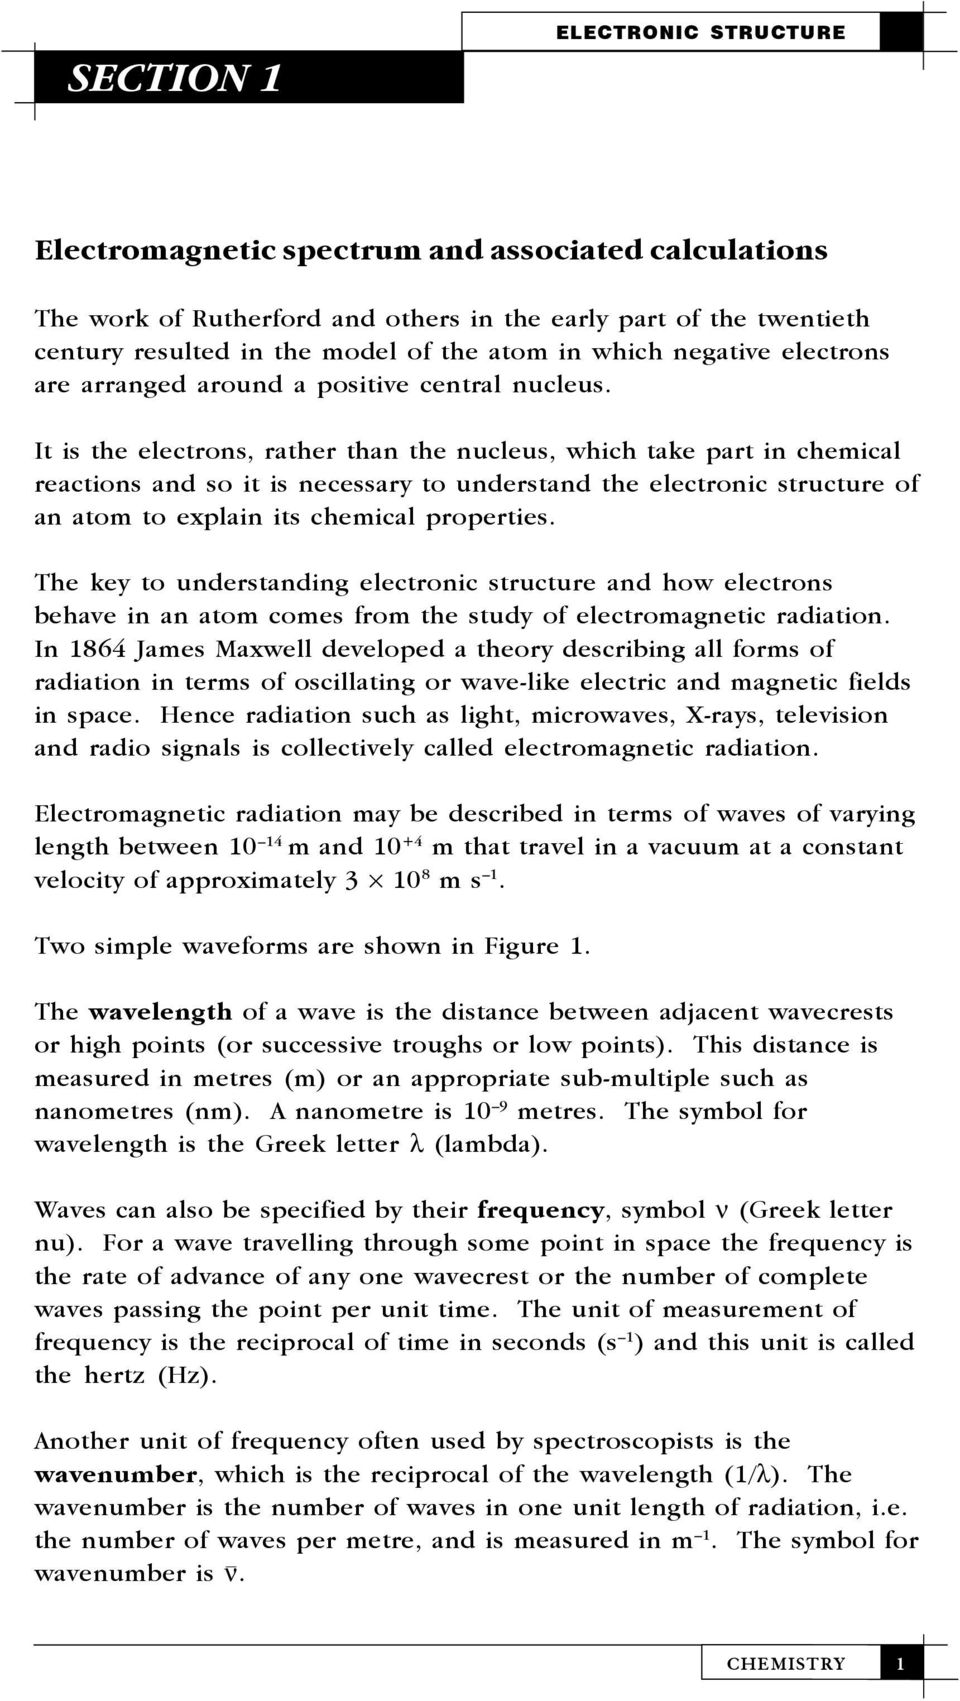 Electromagnetic Spectrum And Associated Calculations Pdf